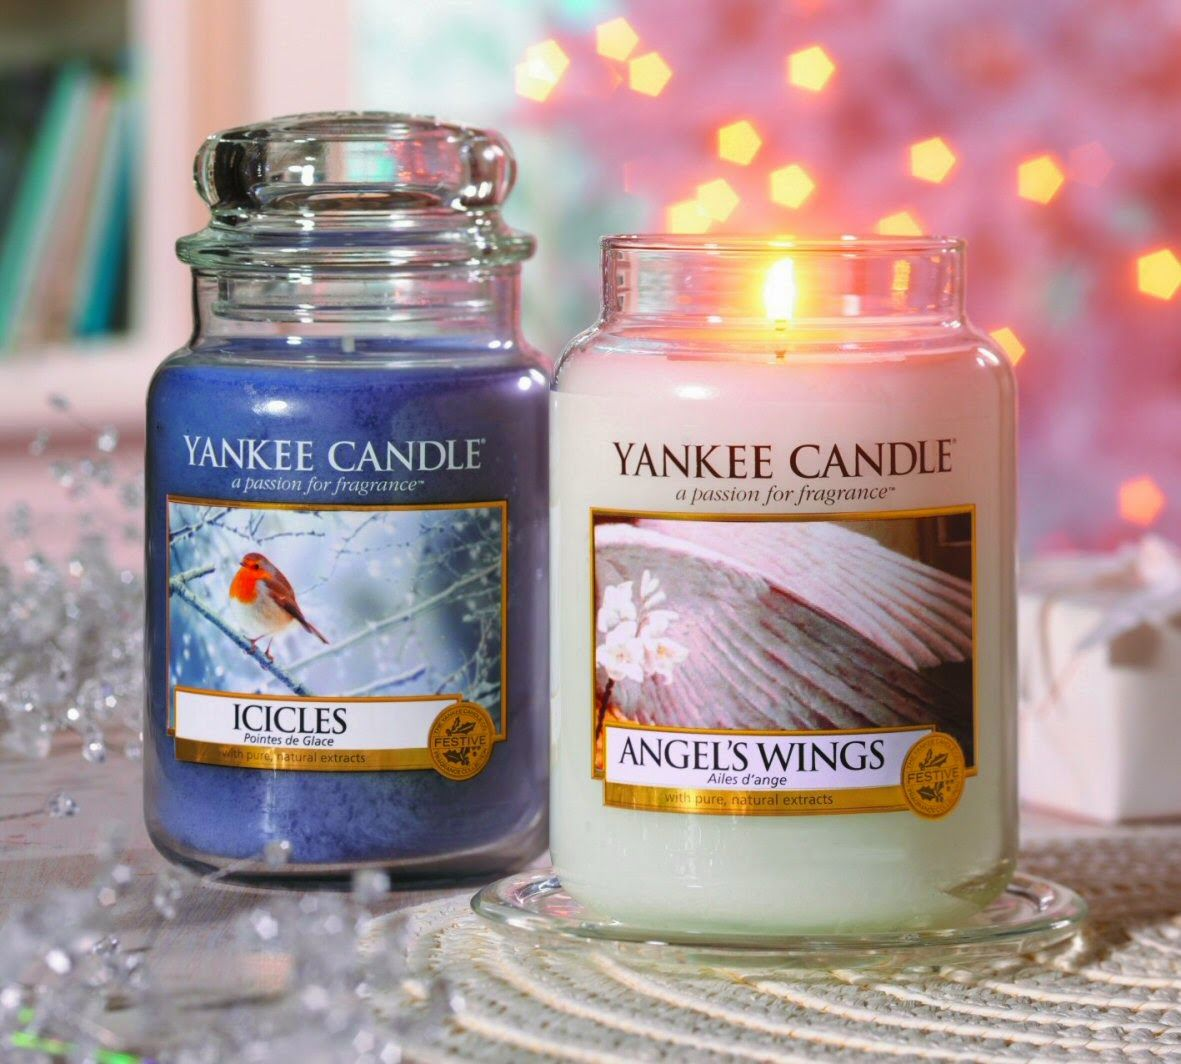 1000+ images about Yankee Candle on Pinterest | Jars, Dr. oz and ...